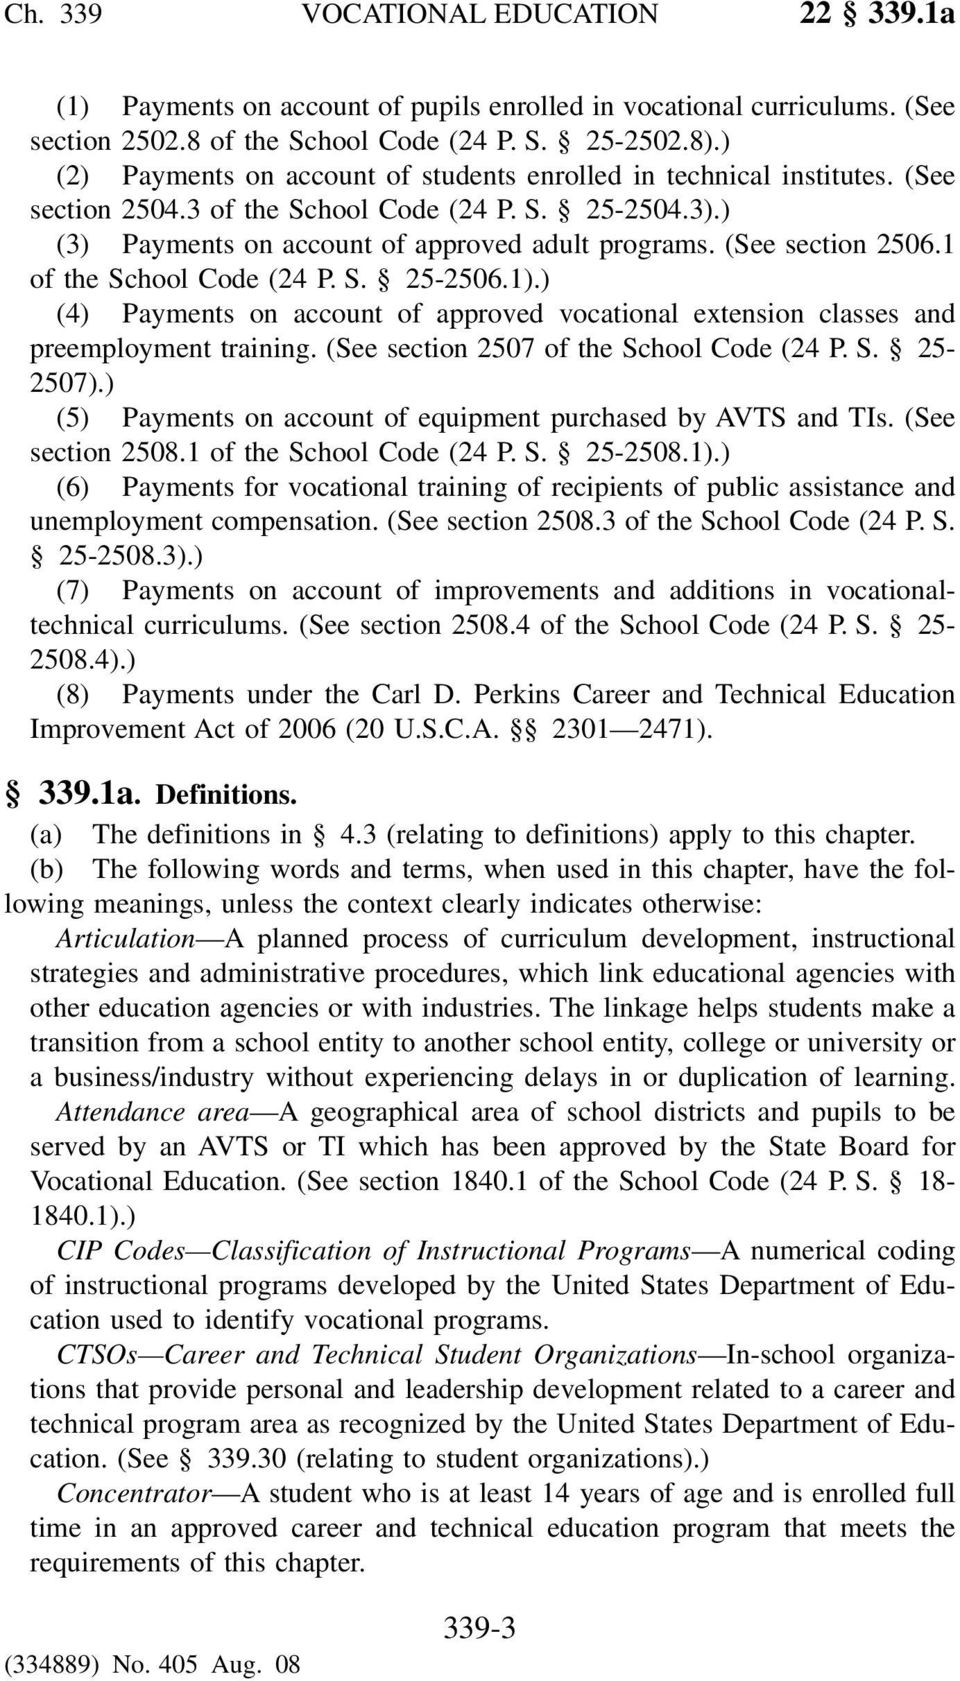 (See section 2506.1 of the School Code (24 P. S. 25-2506.1).) (4) Payments on account of approved vocational extension classes and preemployment training. (See section 2507 of the School Code (24 P.